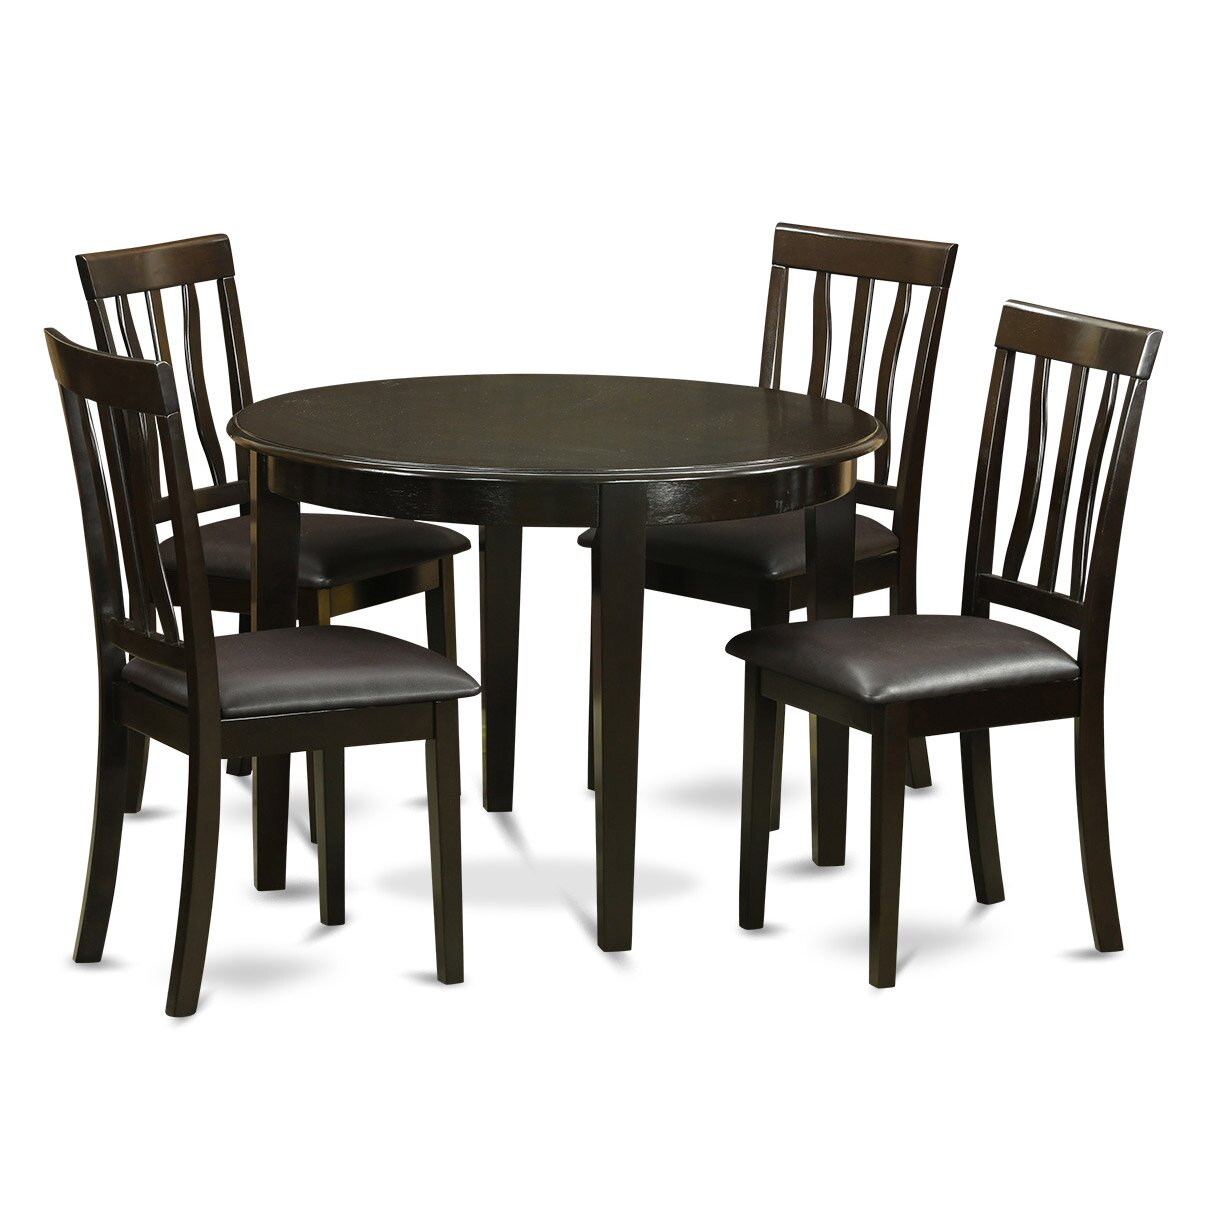 Kitchen Table And 2 Chairs Set 3 Kitchen Nook Dining Set